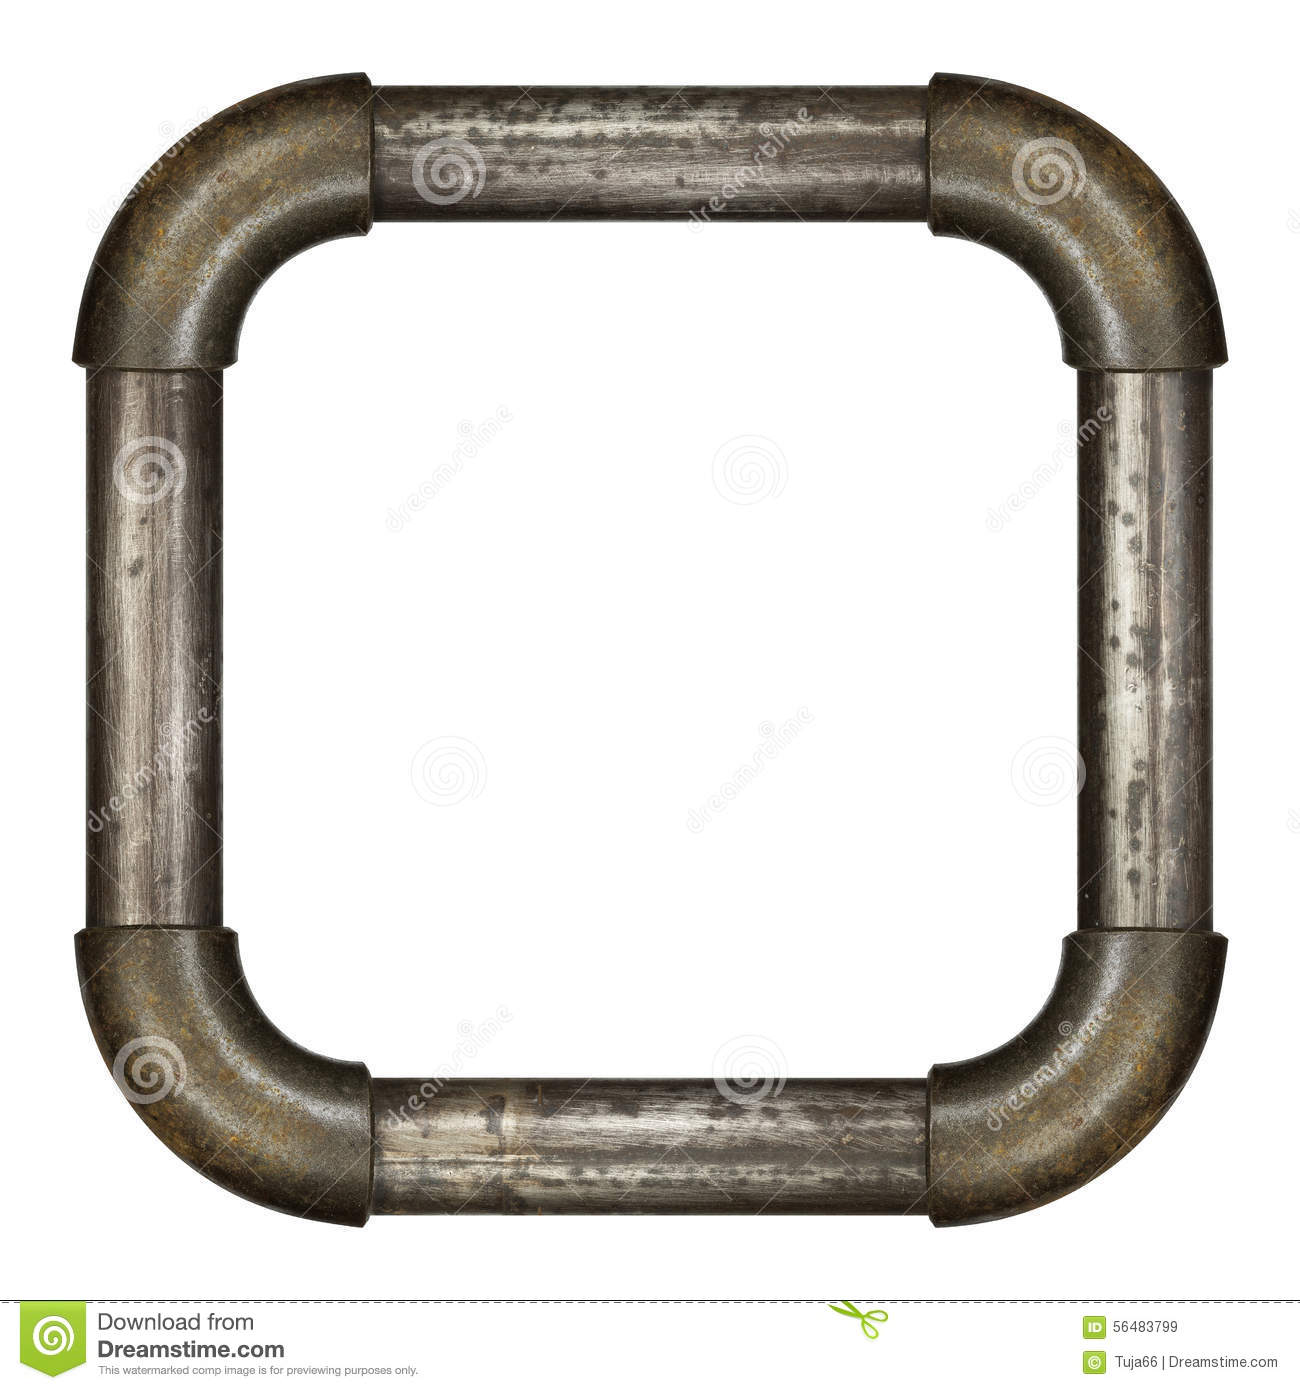 pipe frame royalty free stock images